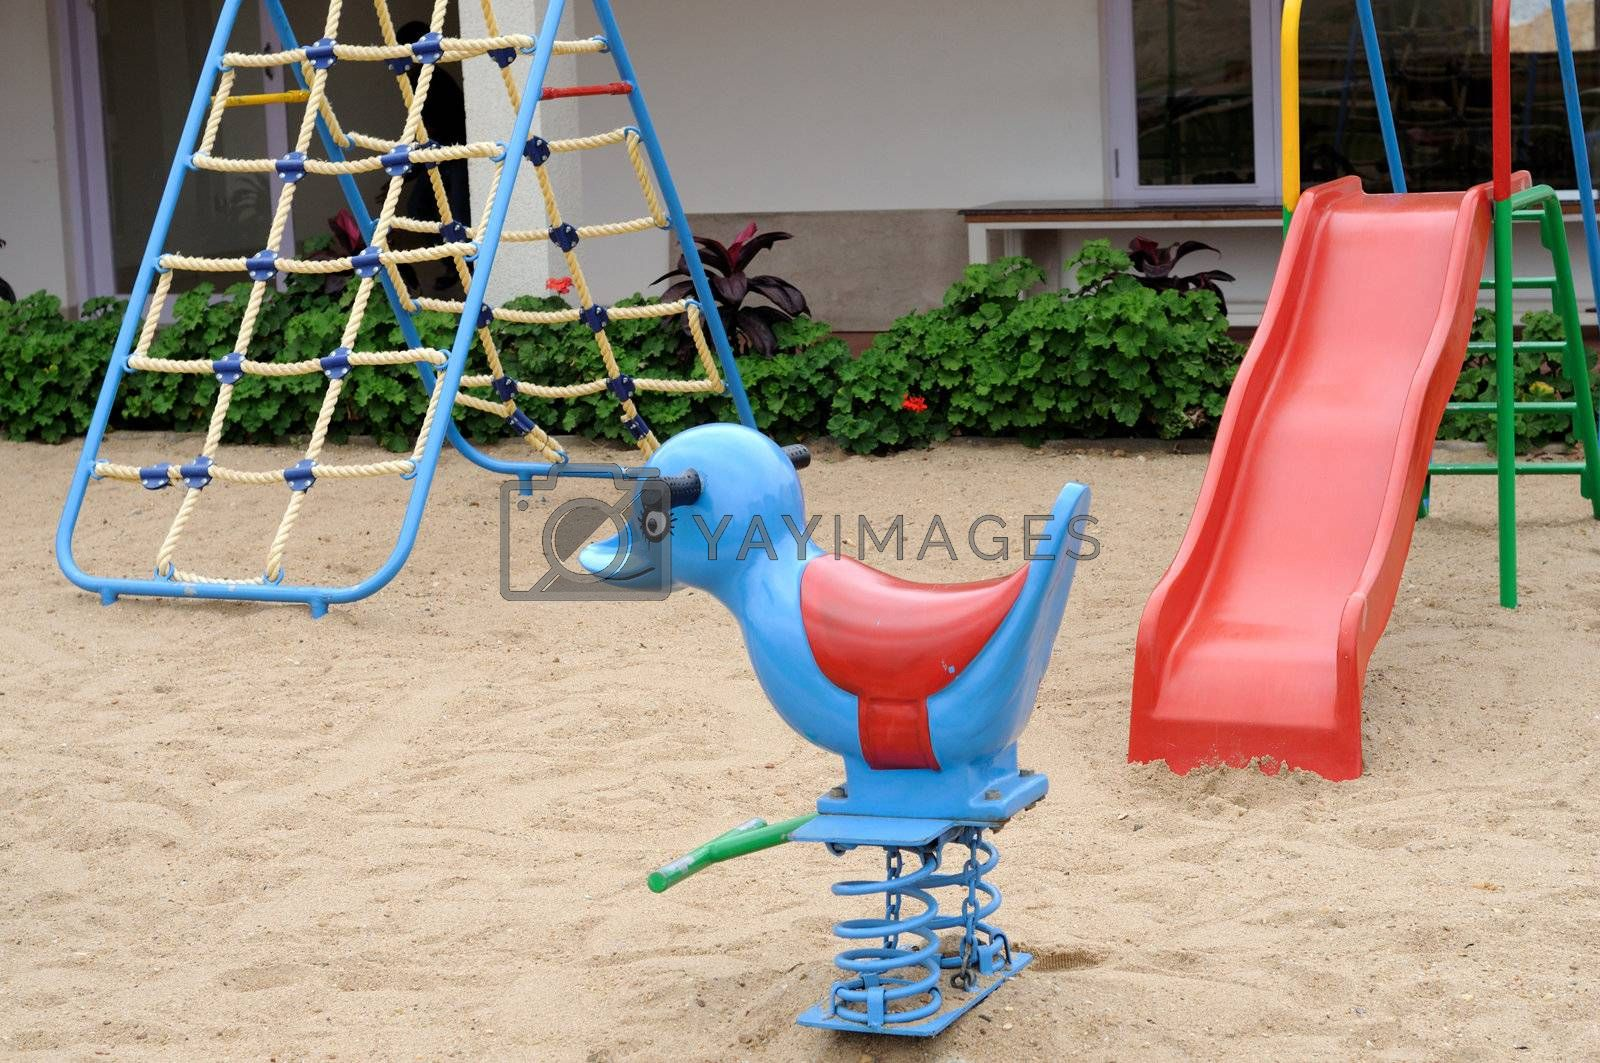 Royalty free image of Play Area by pazham